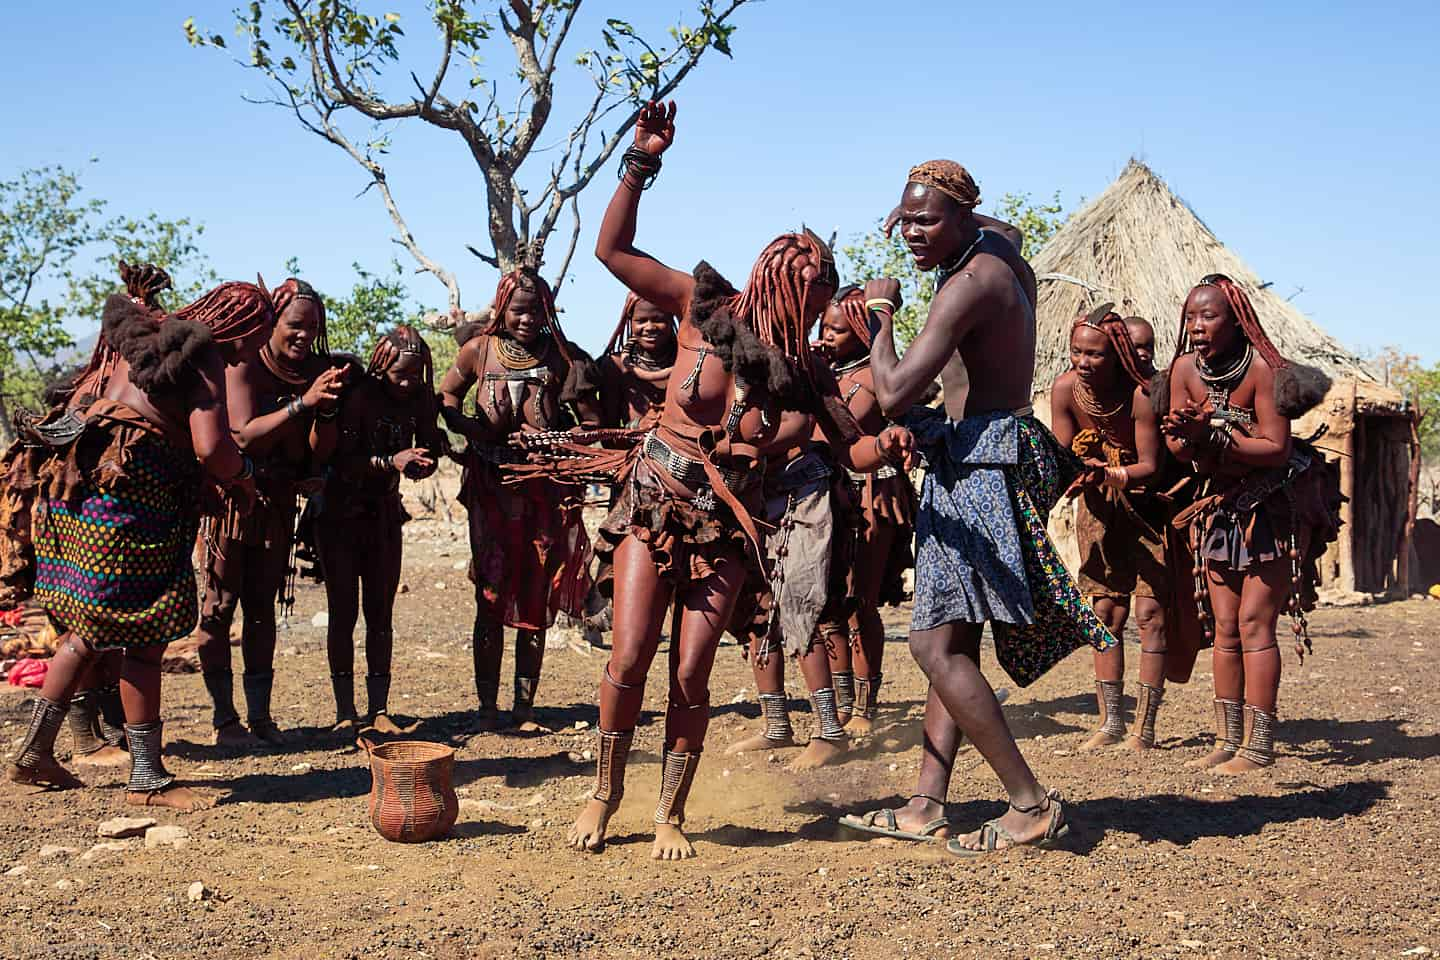 Himba Dancing in Group